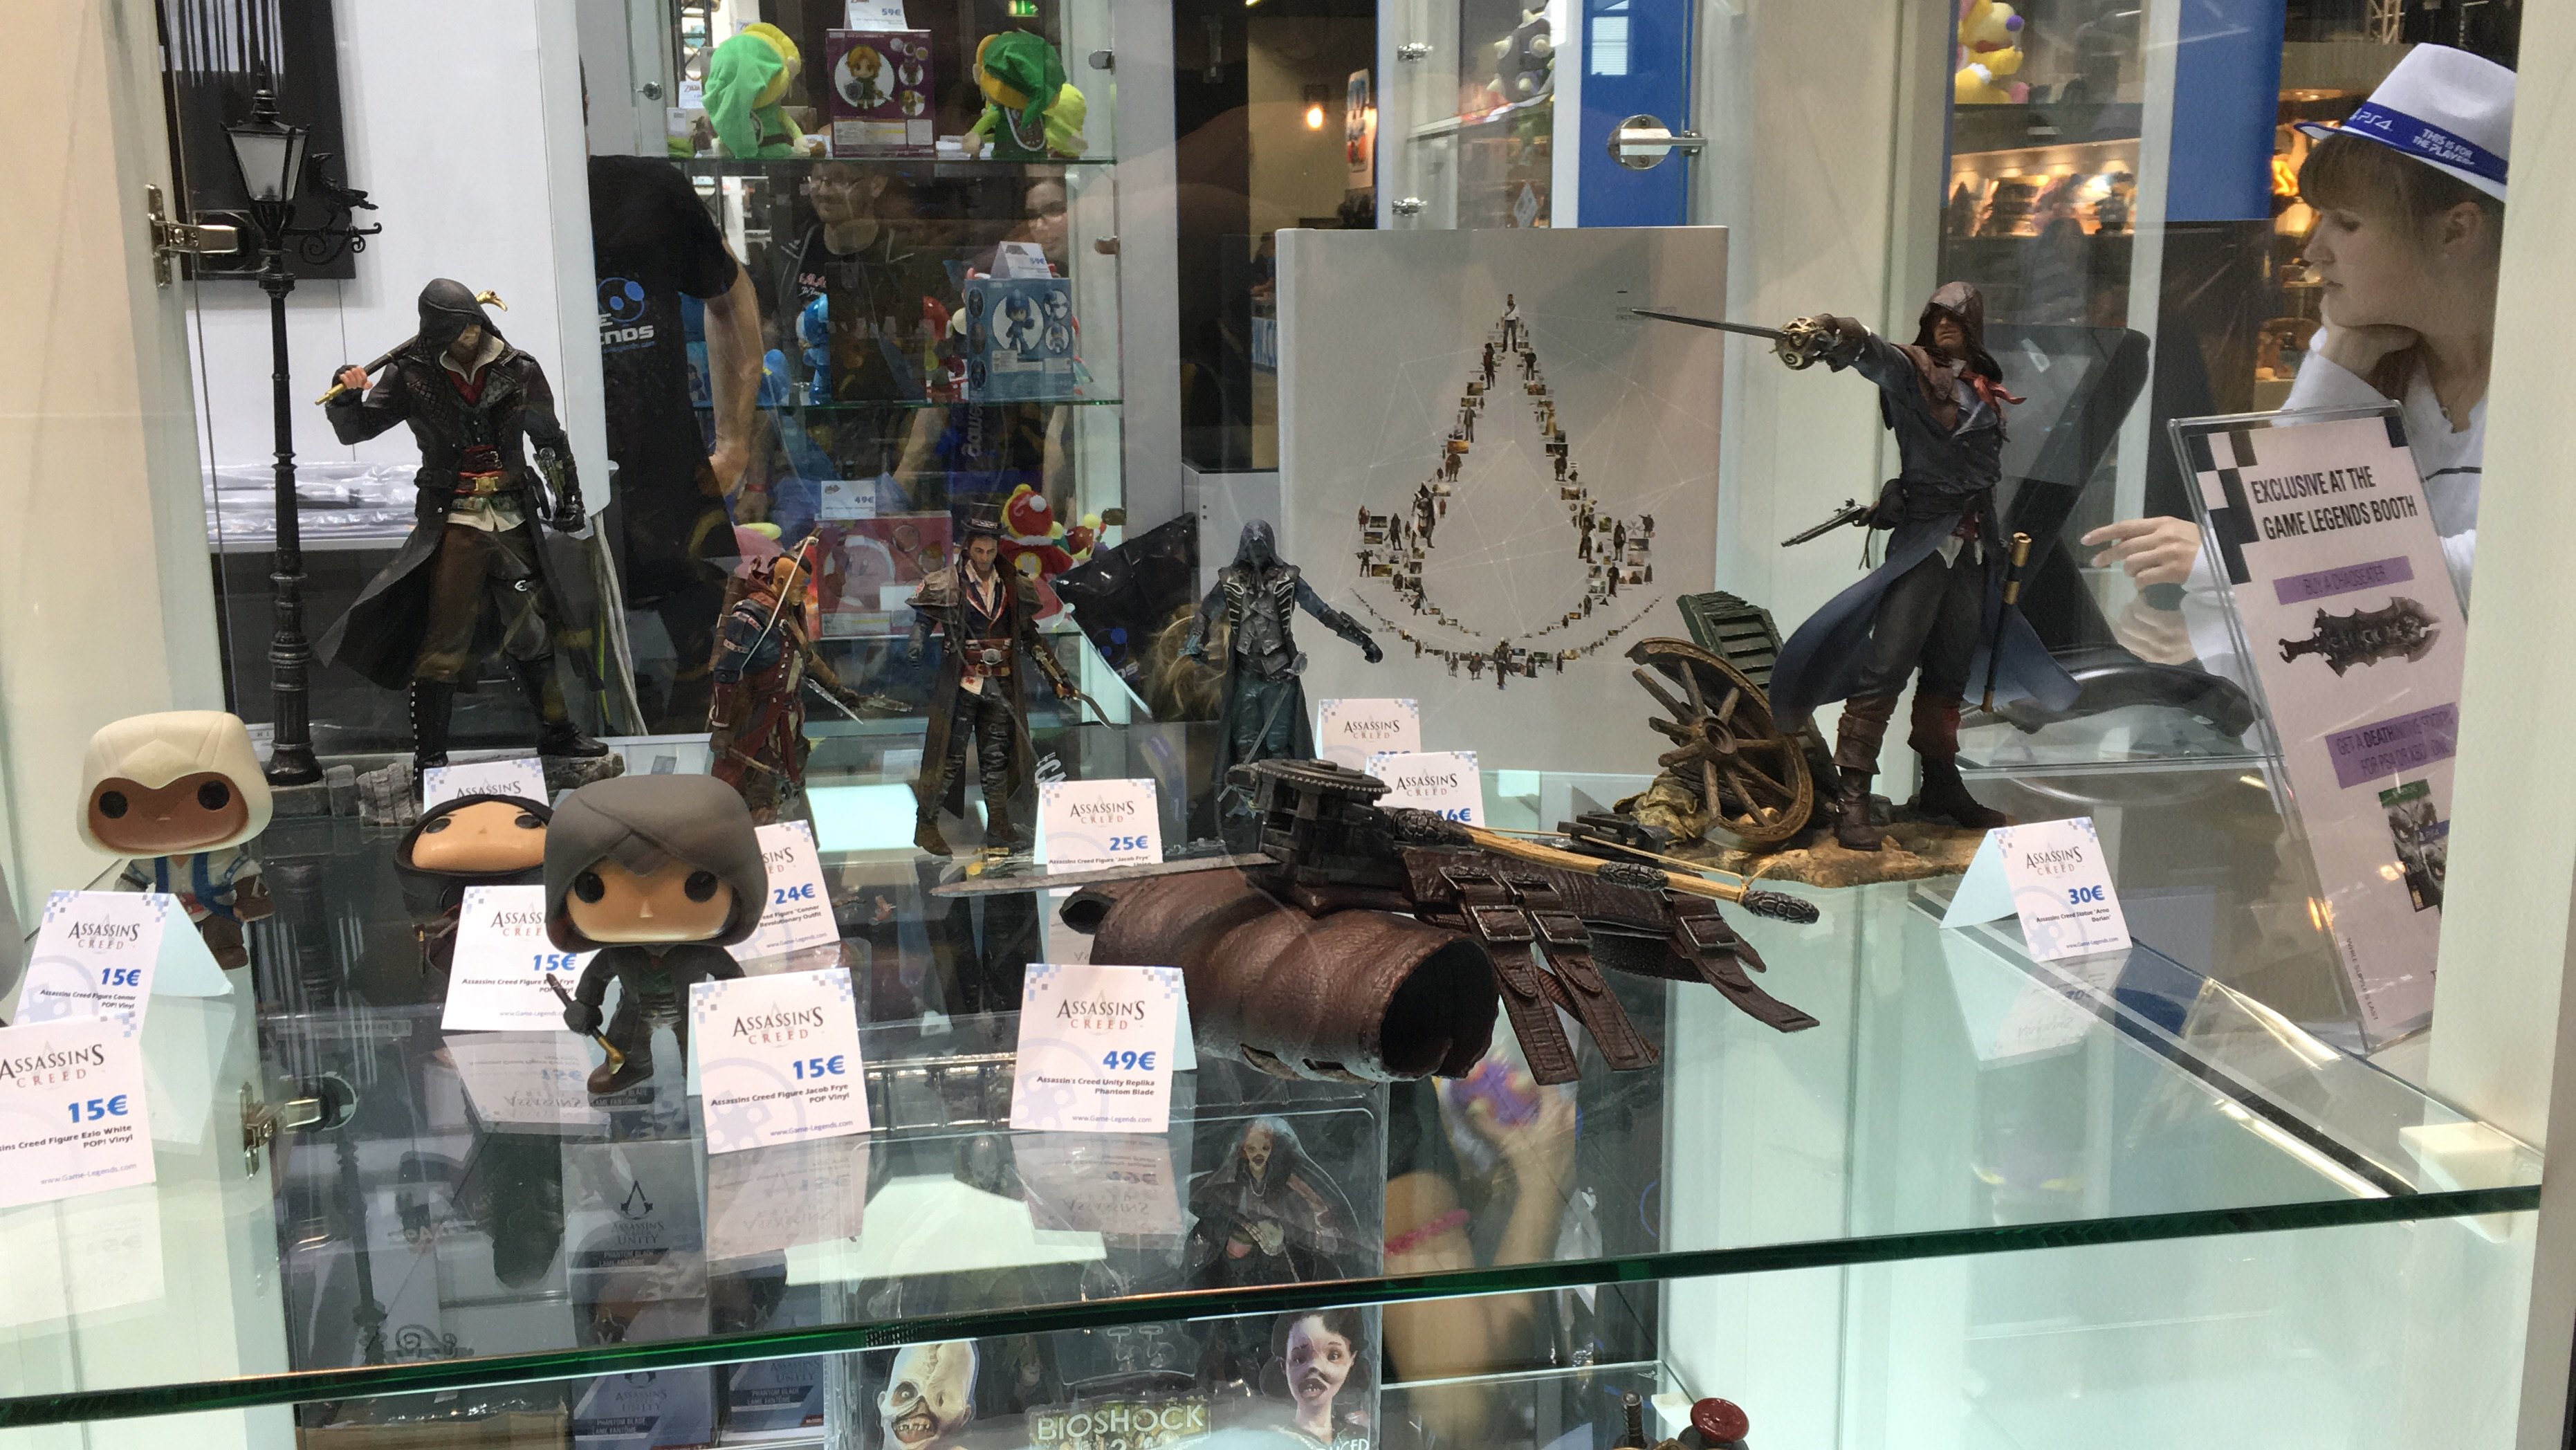 Assassin's Creed Merchandise